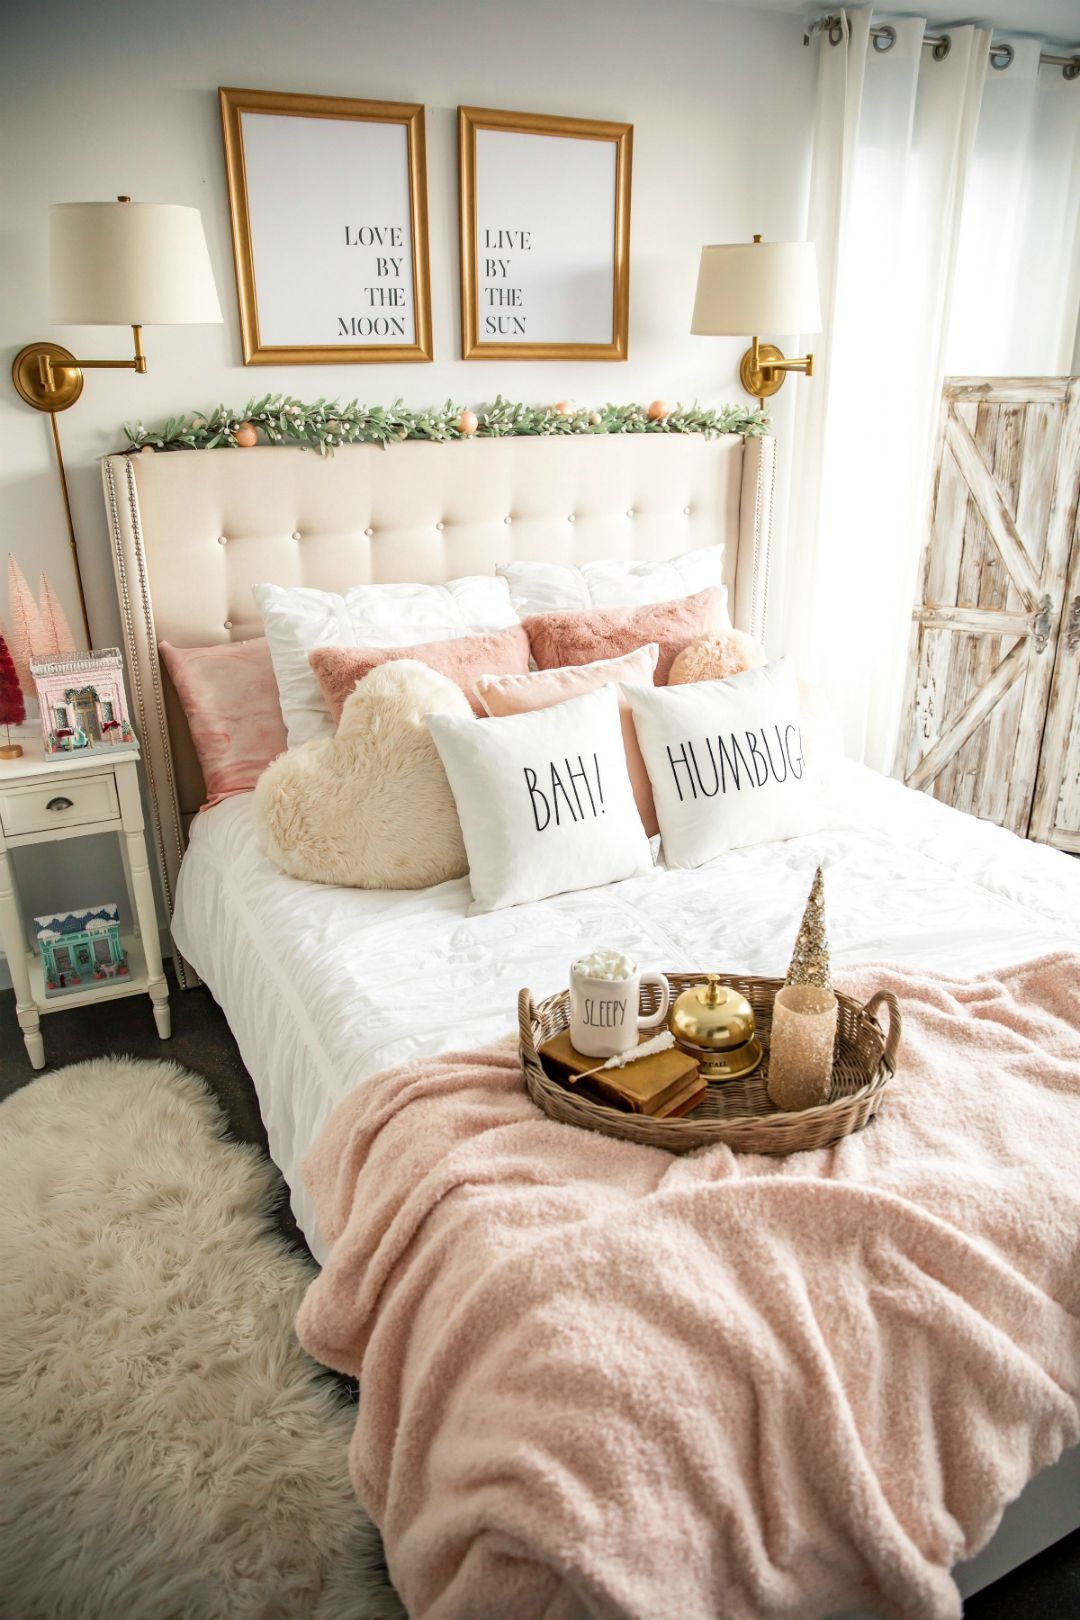 Blush Christmas Bedroom Decoration The House Of Sequins Bedroom Setup Gold Bedroom Decor Christmas Decorations Bedroom